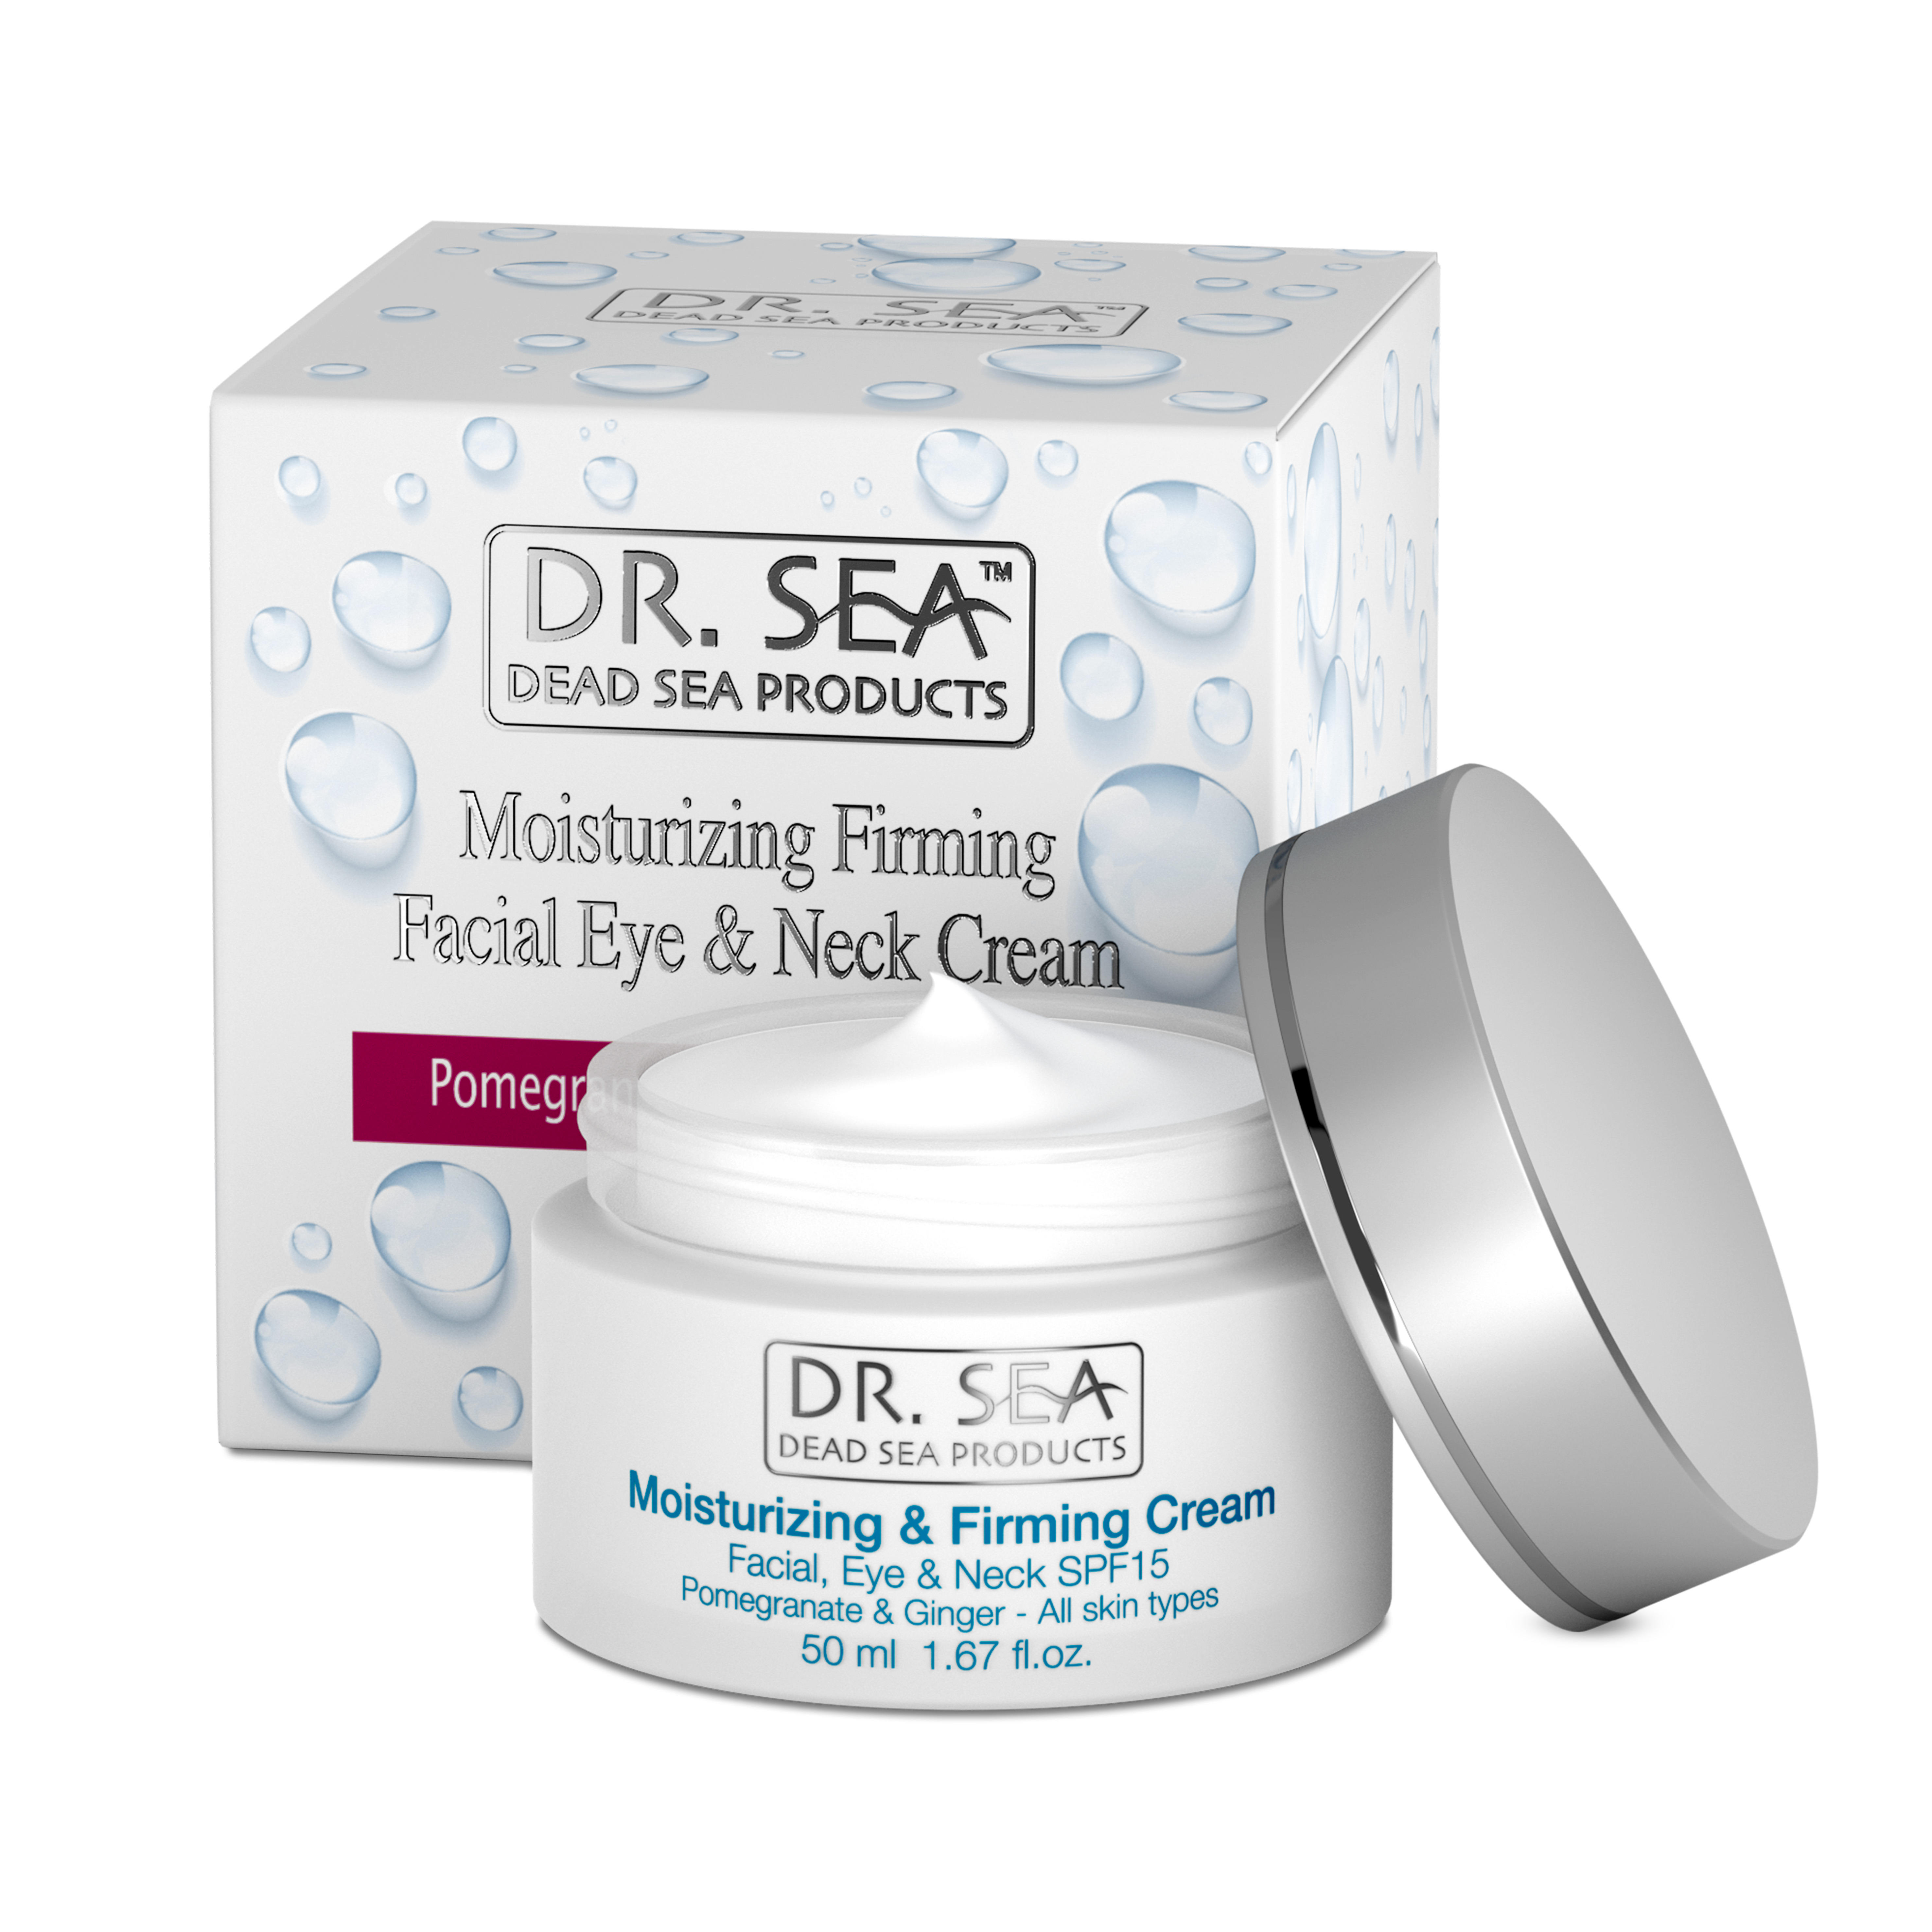 Moisturizing and Firming Facial, Eye and Neck Skin Cream with Pomegranate and Ginger Extracts SPF 15